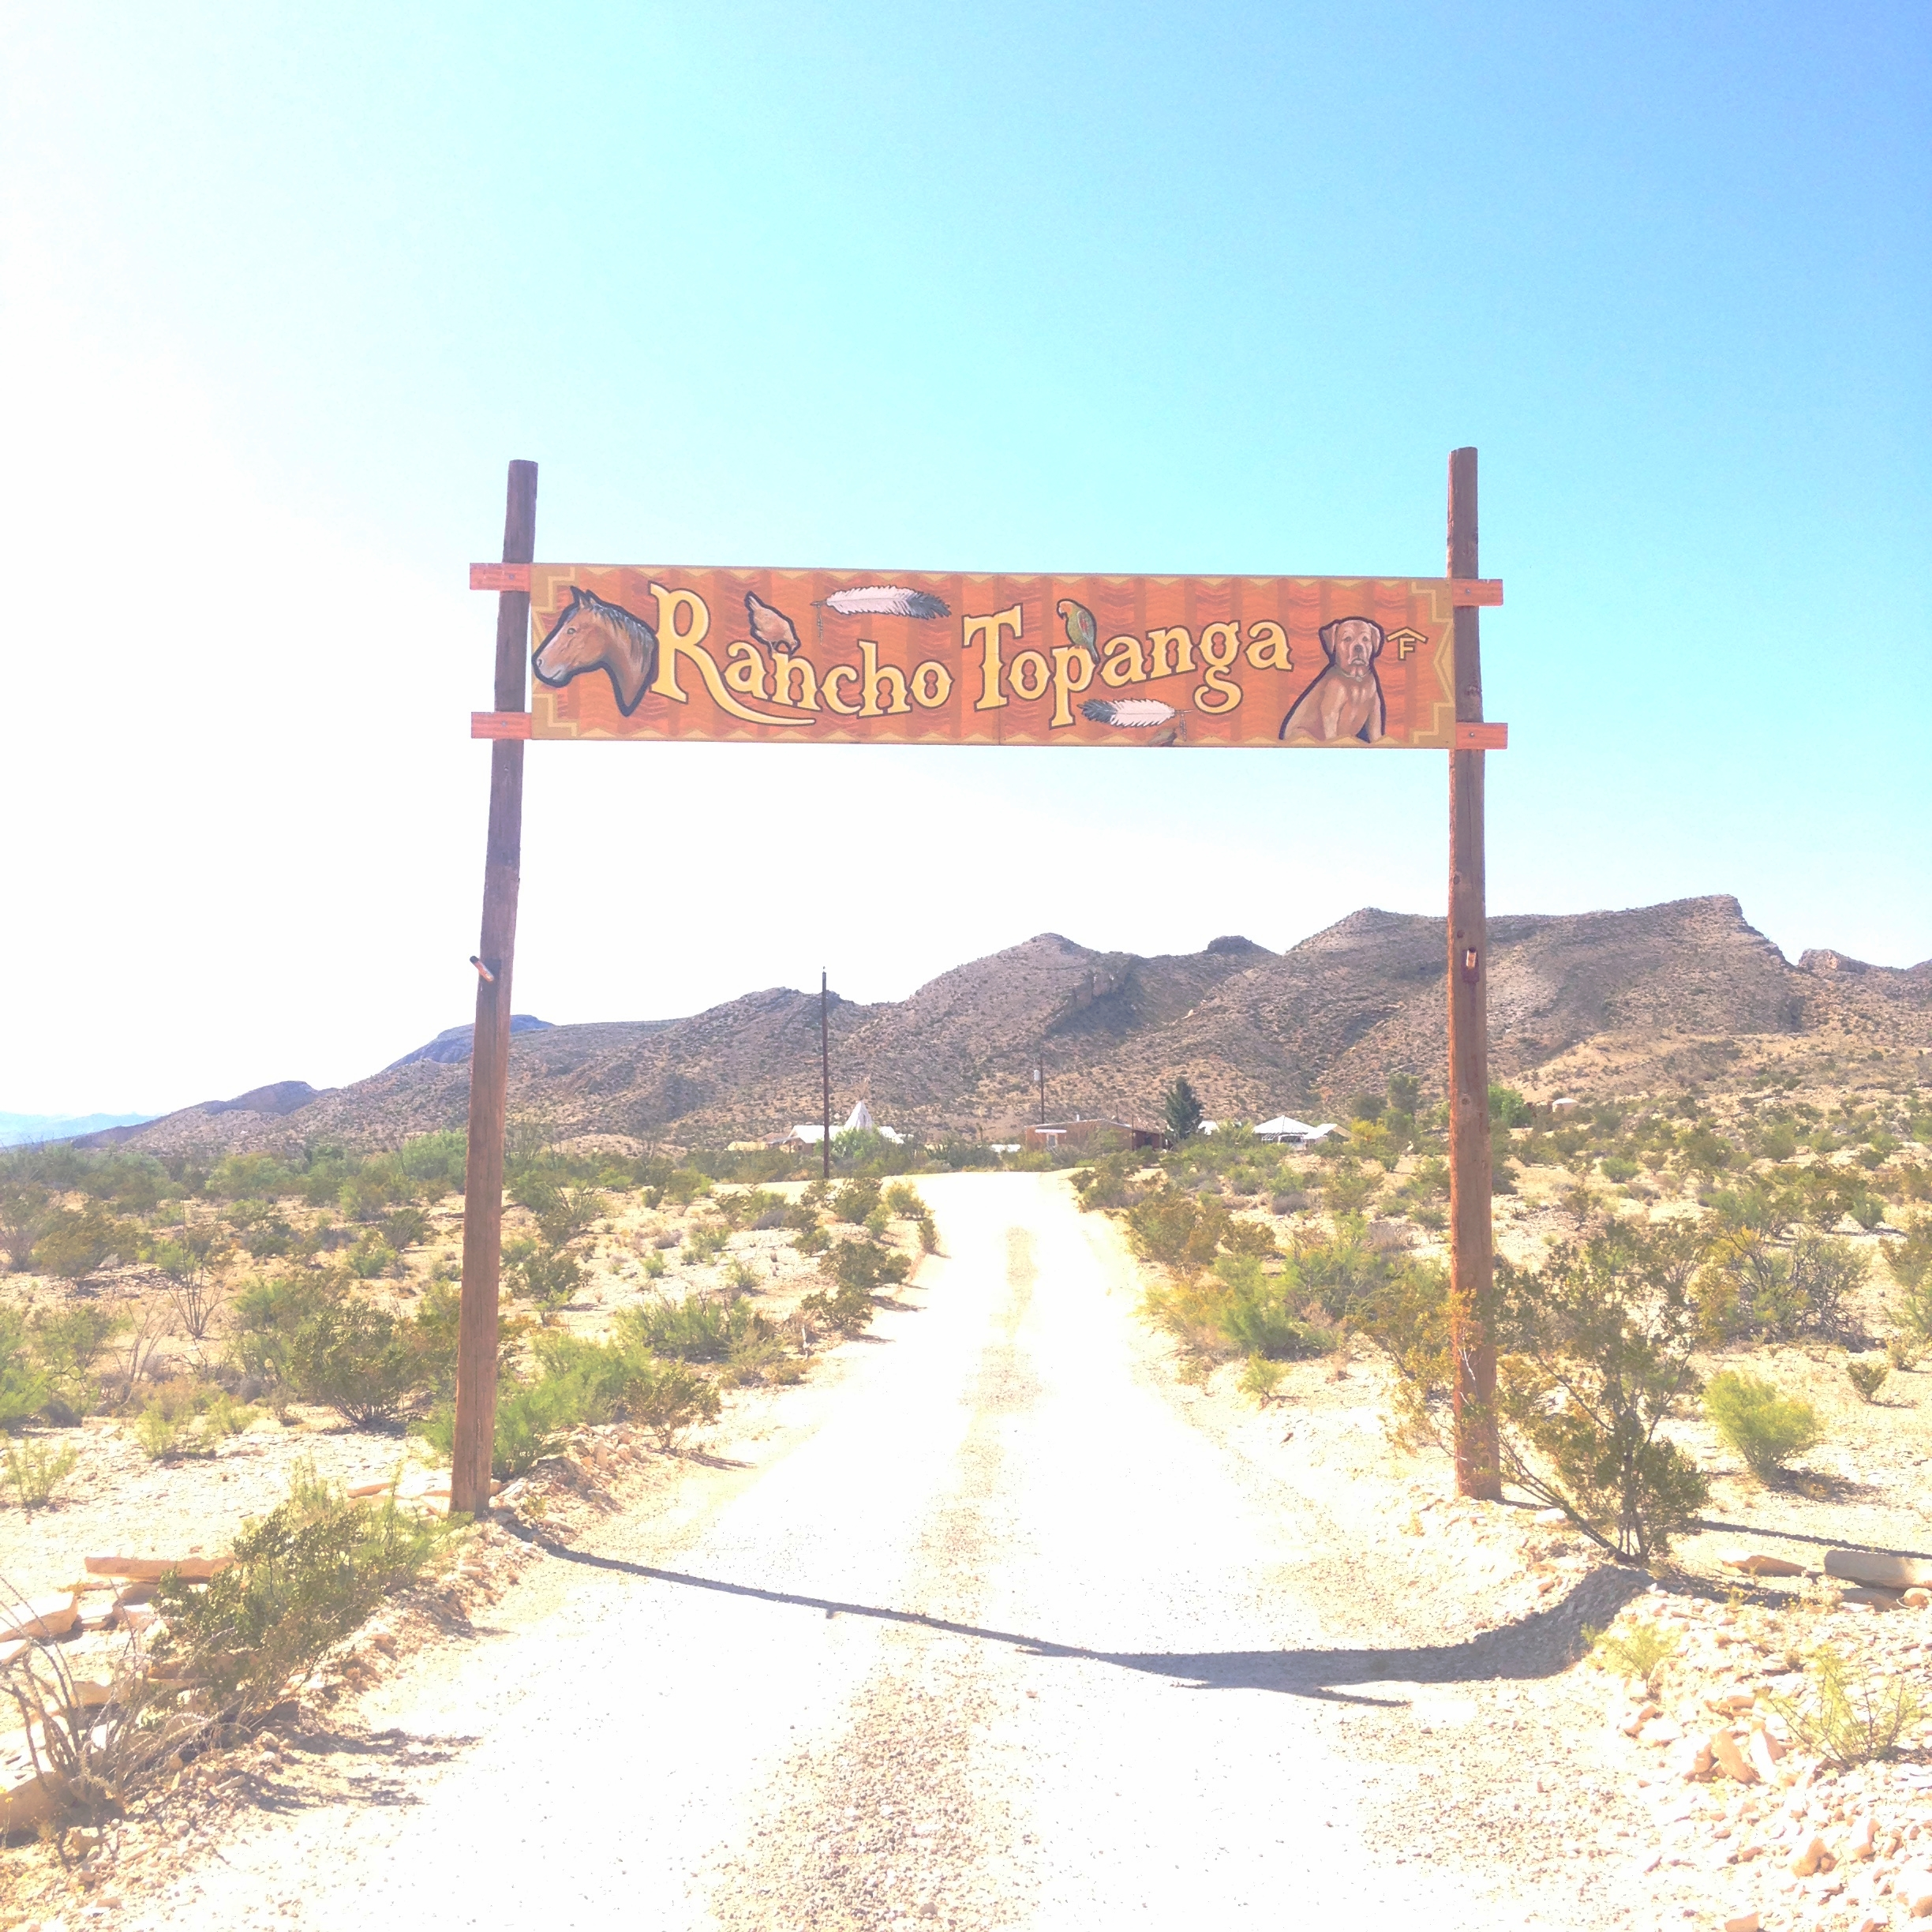 Rancho Topanga, clean showers and a perfect location between the state park and Terlingua